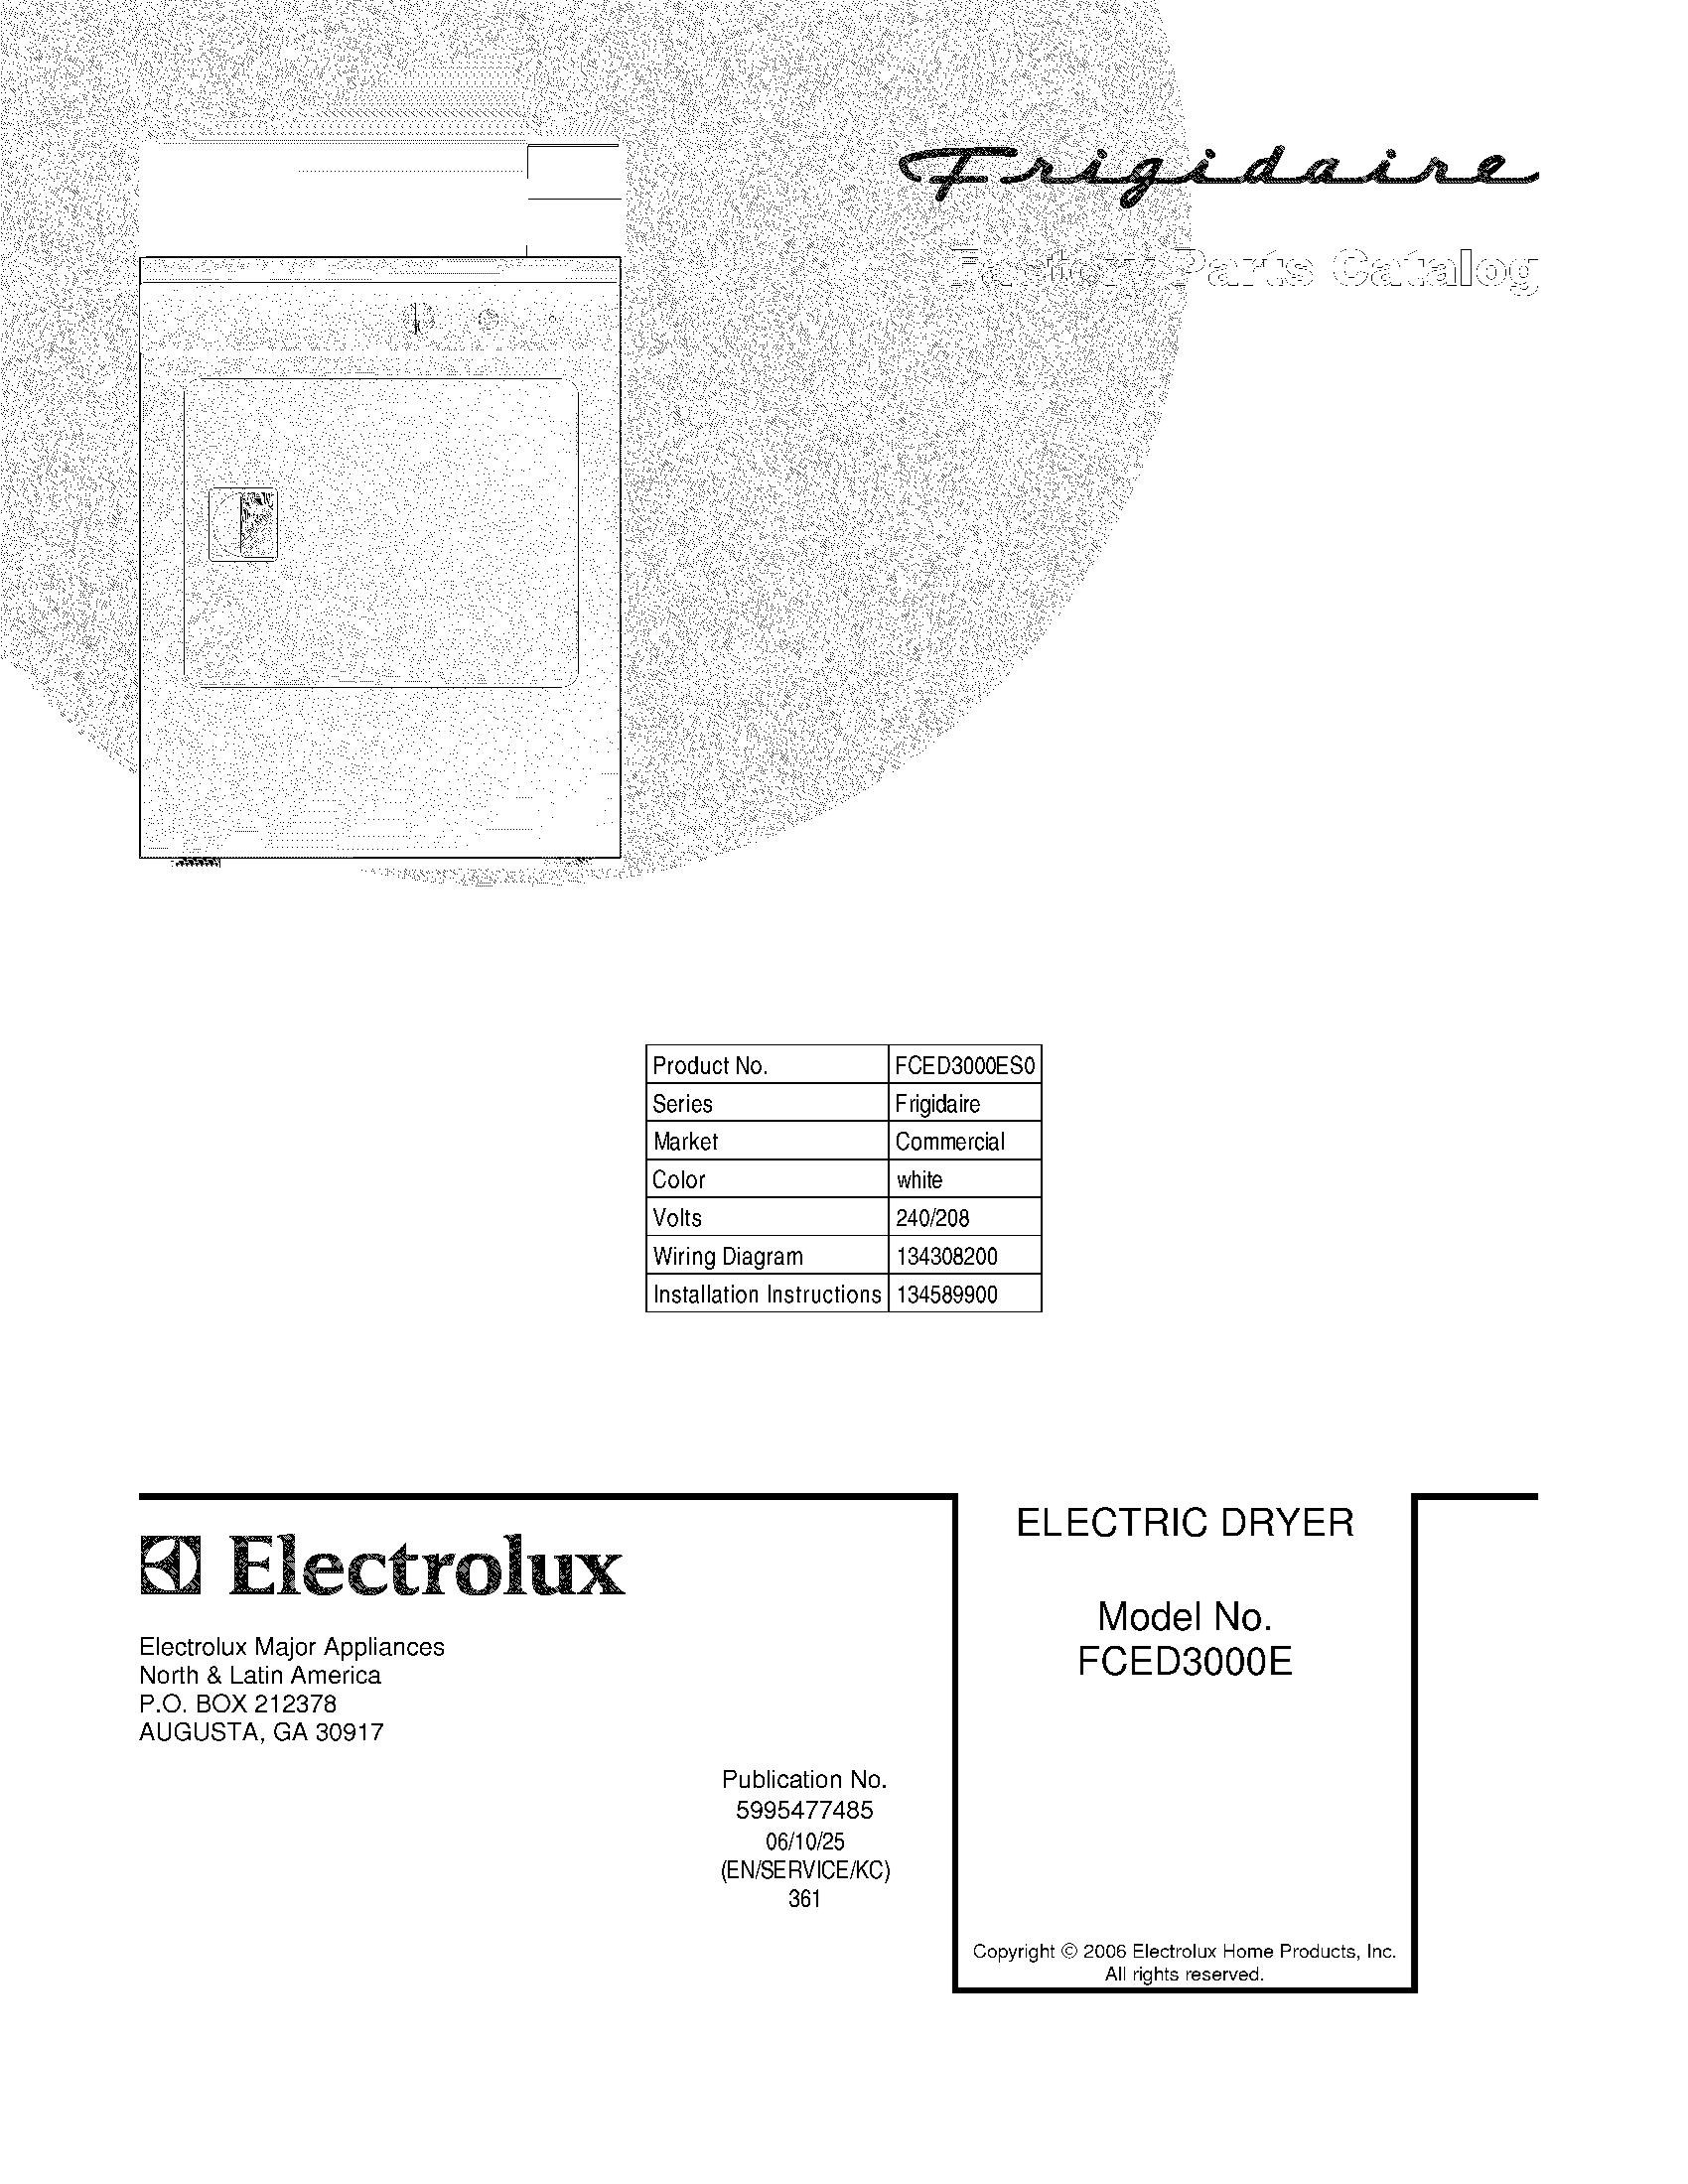 ElectroluxImg_19000101 20150717_00041943?width=1000 fced3000es0 frigidaire company appliance parts Frigidaire Dryer Repair Manual at crackthecode.co